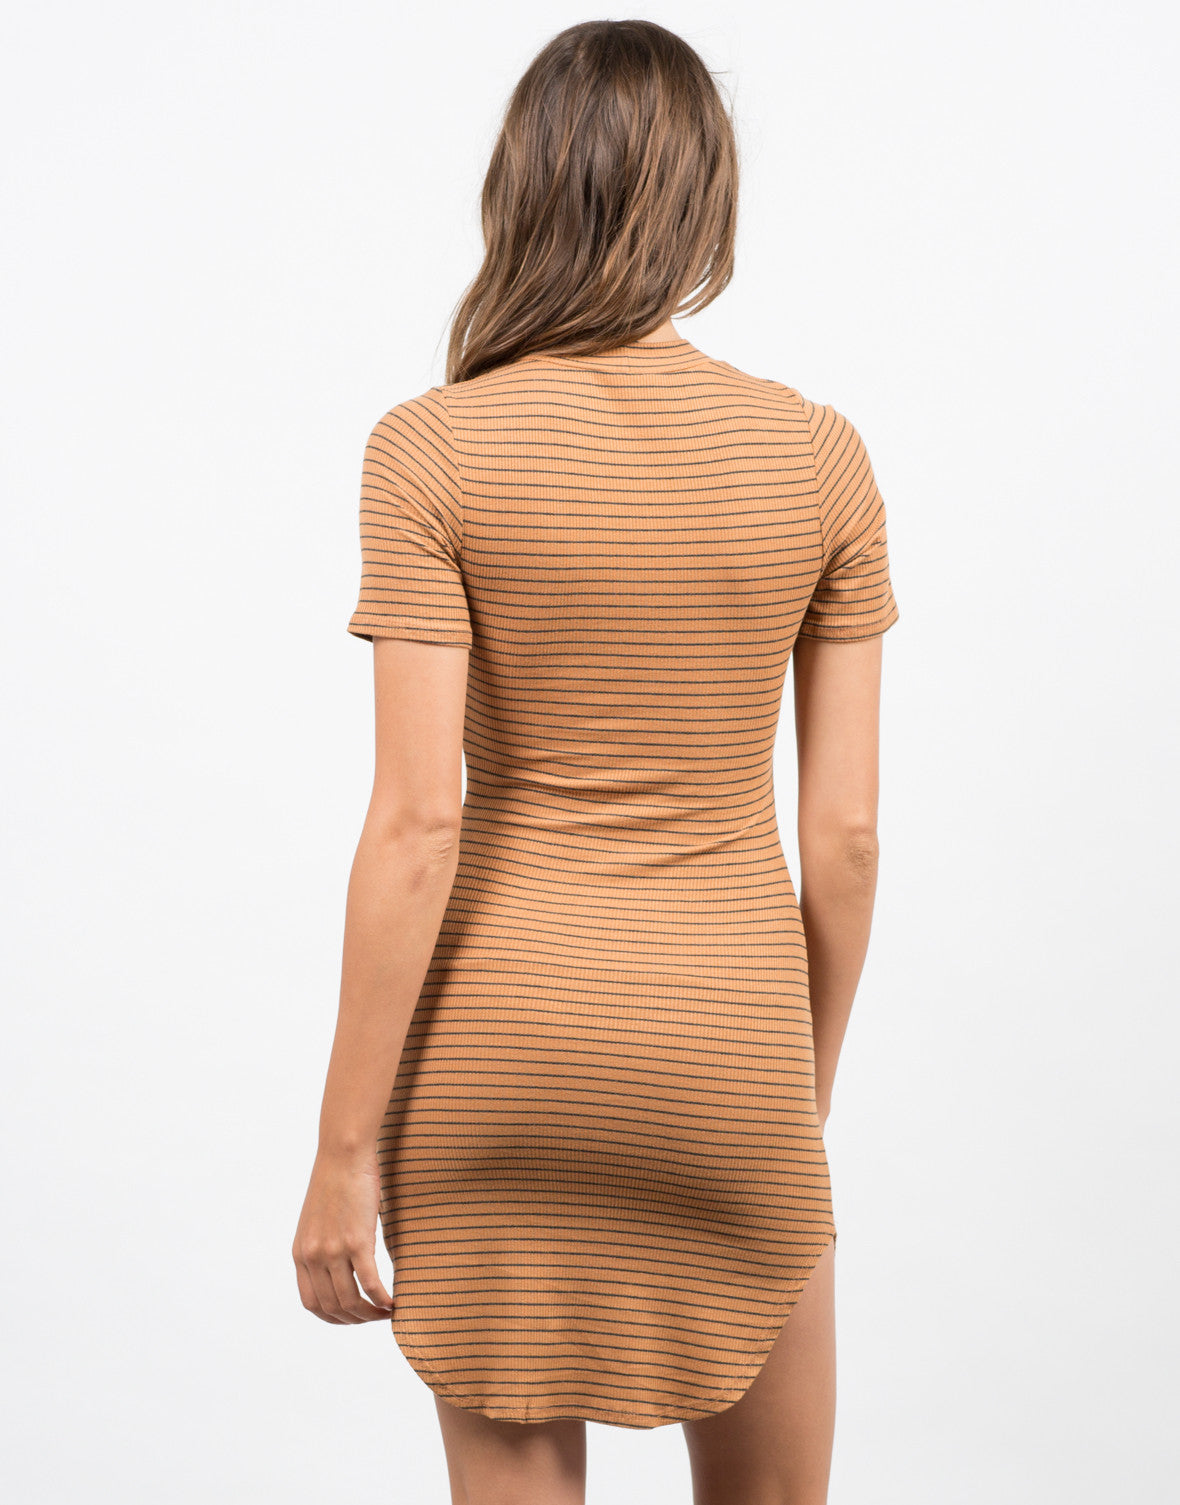 Back View of Striped Mock Neck Dress